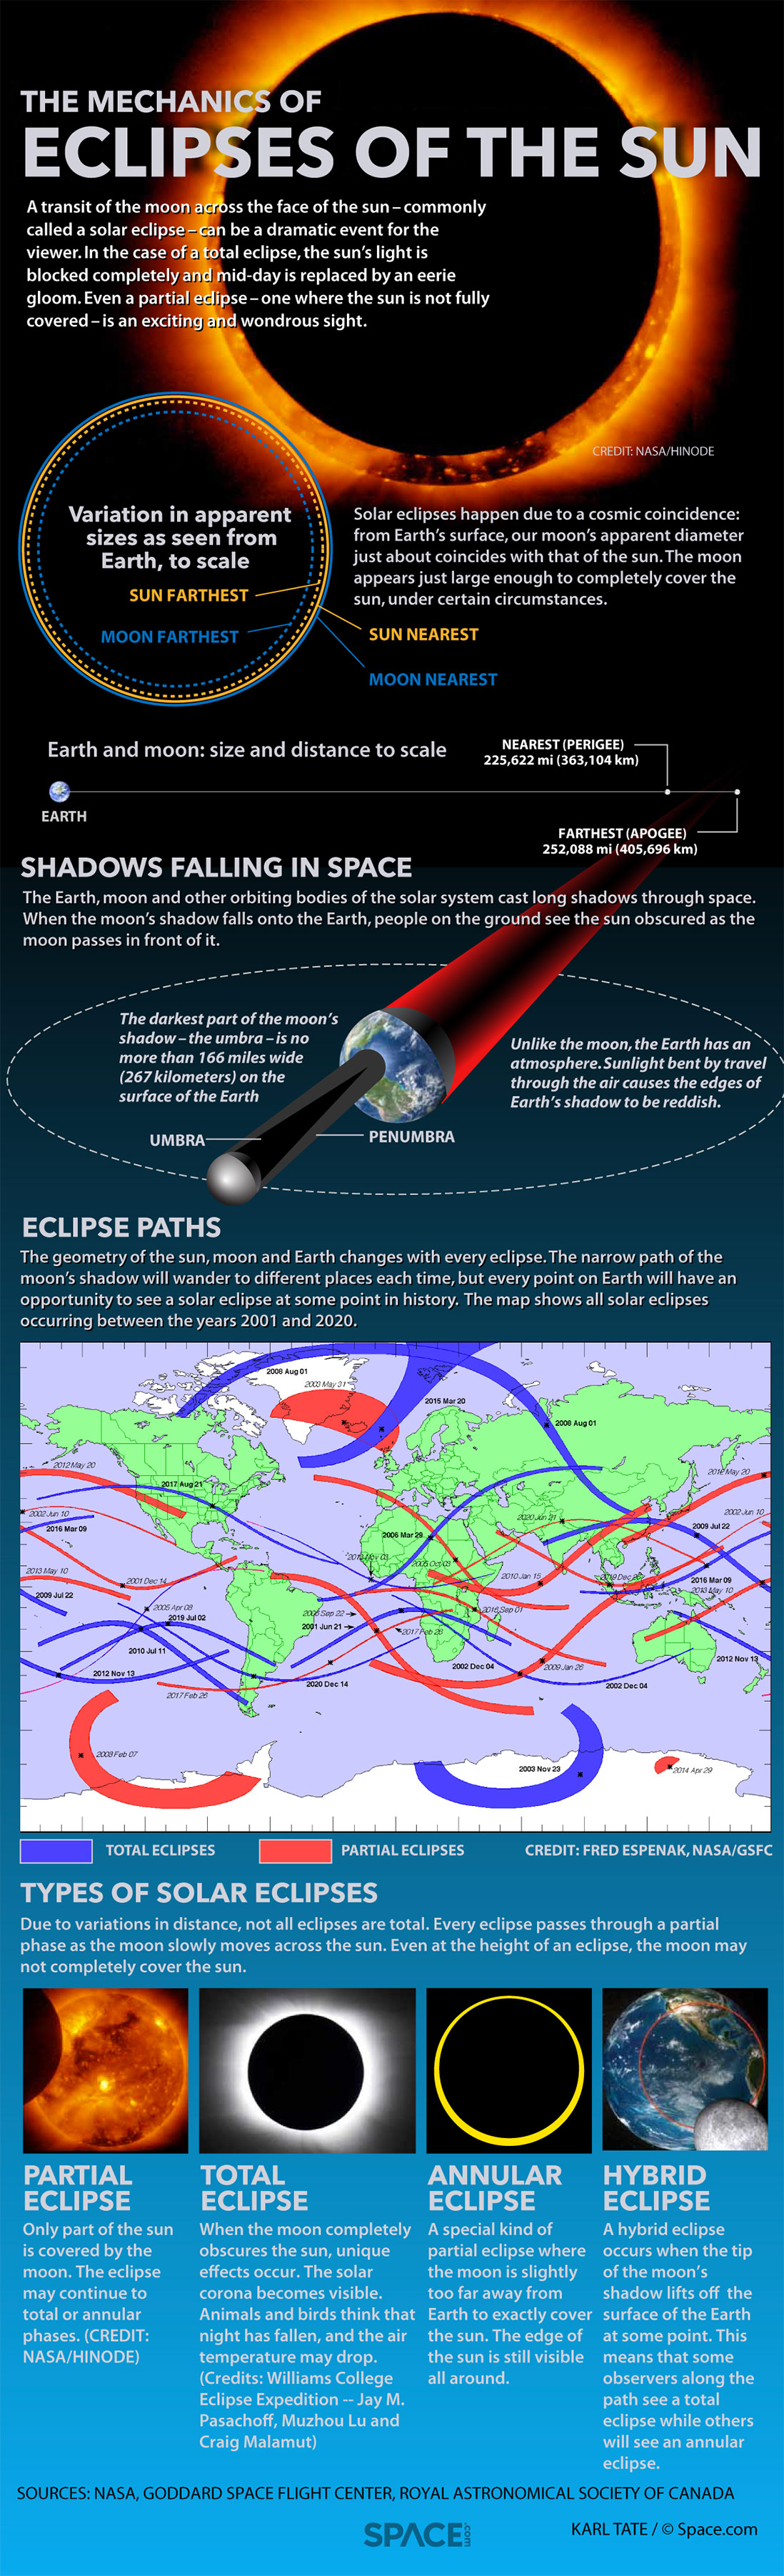 Eclipse Infographic - Karl Tate, SPACE.com Contributor